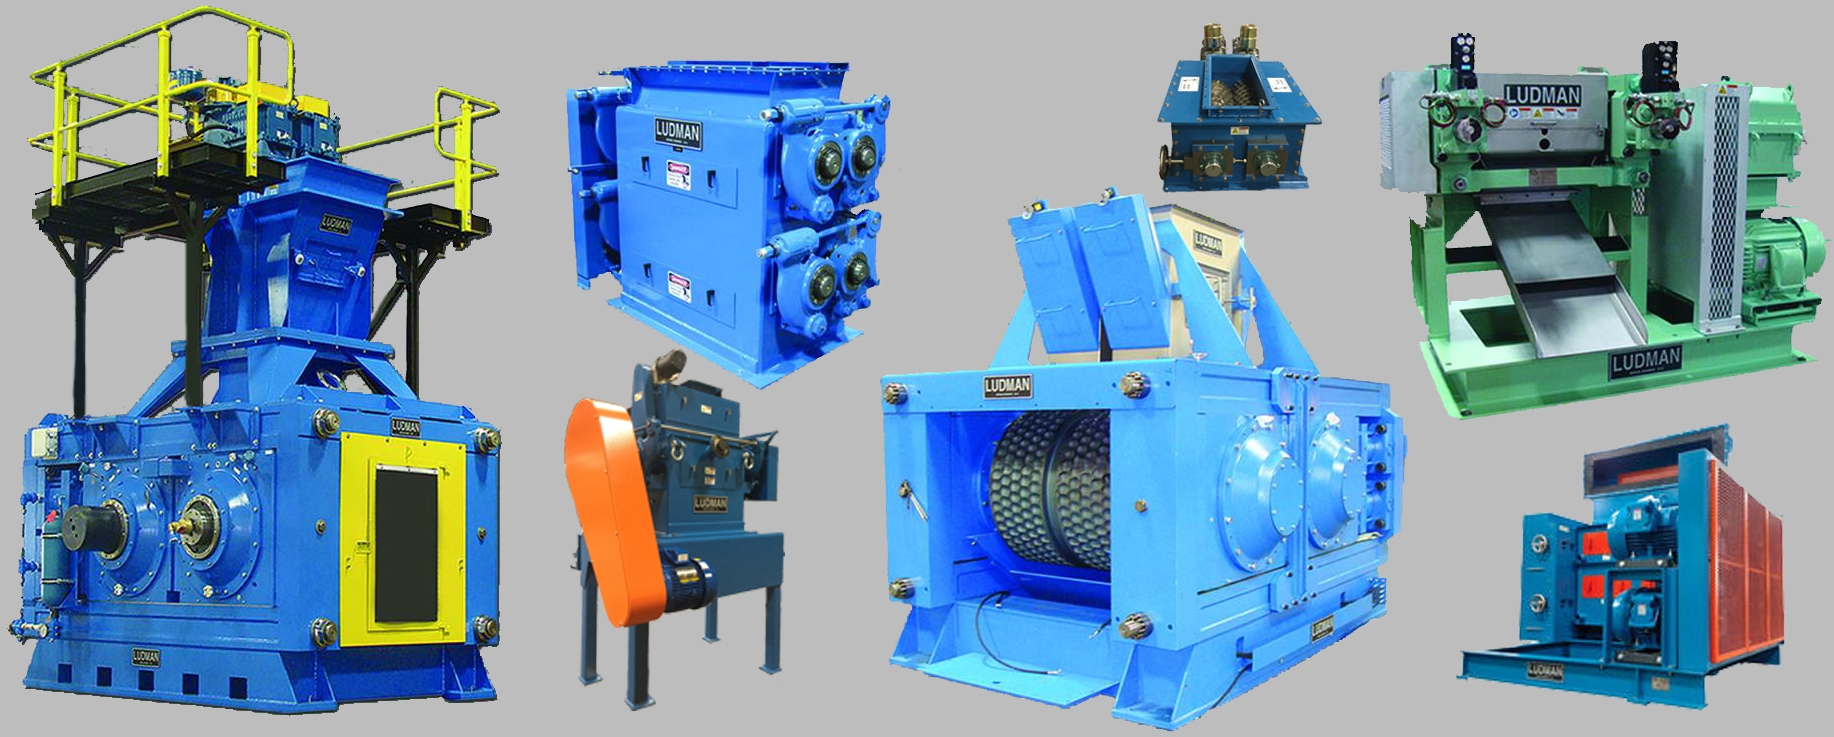 Ludman Industries Products